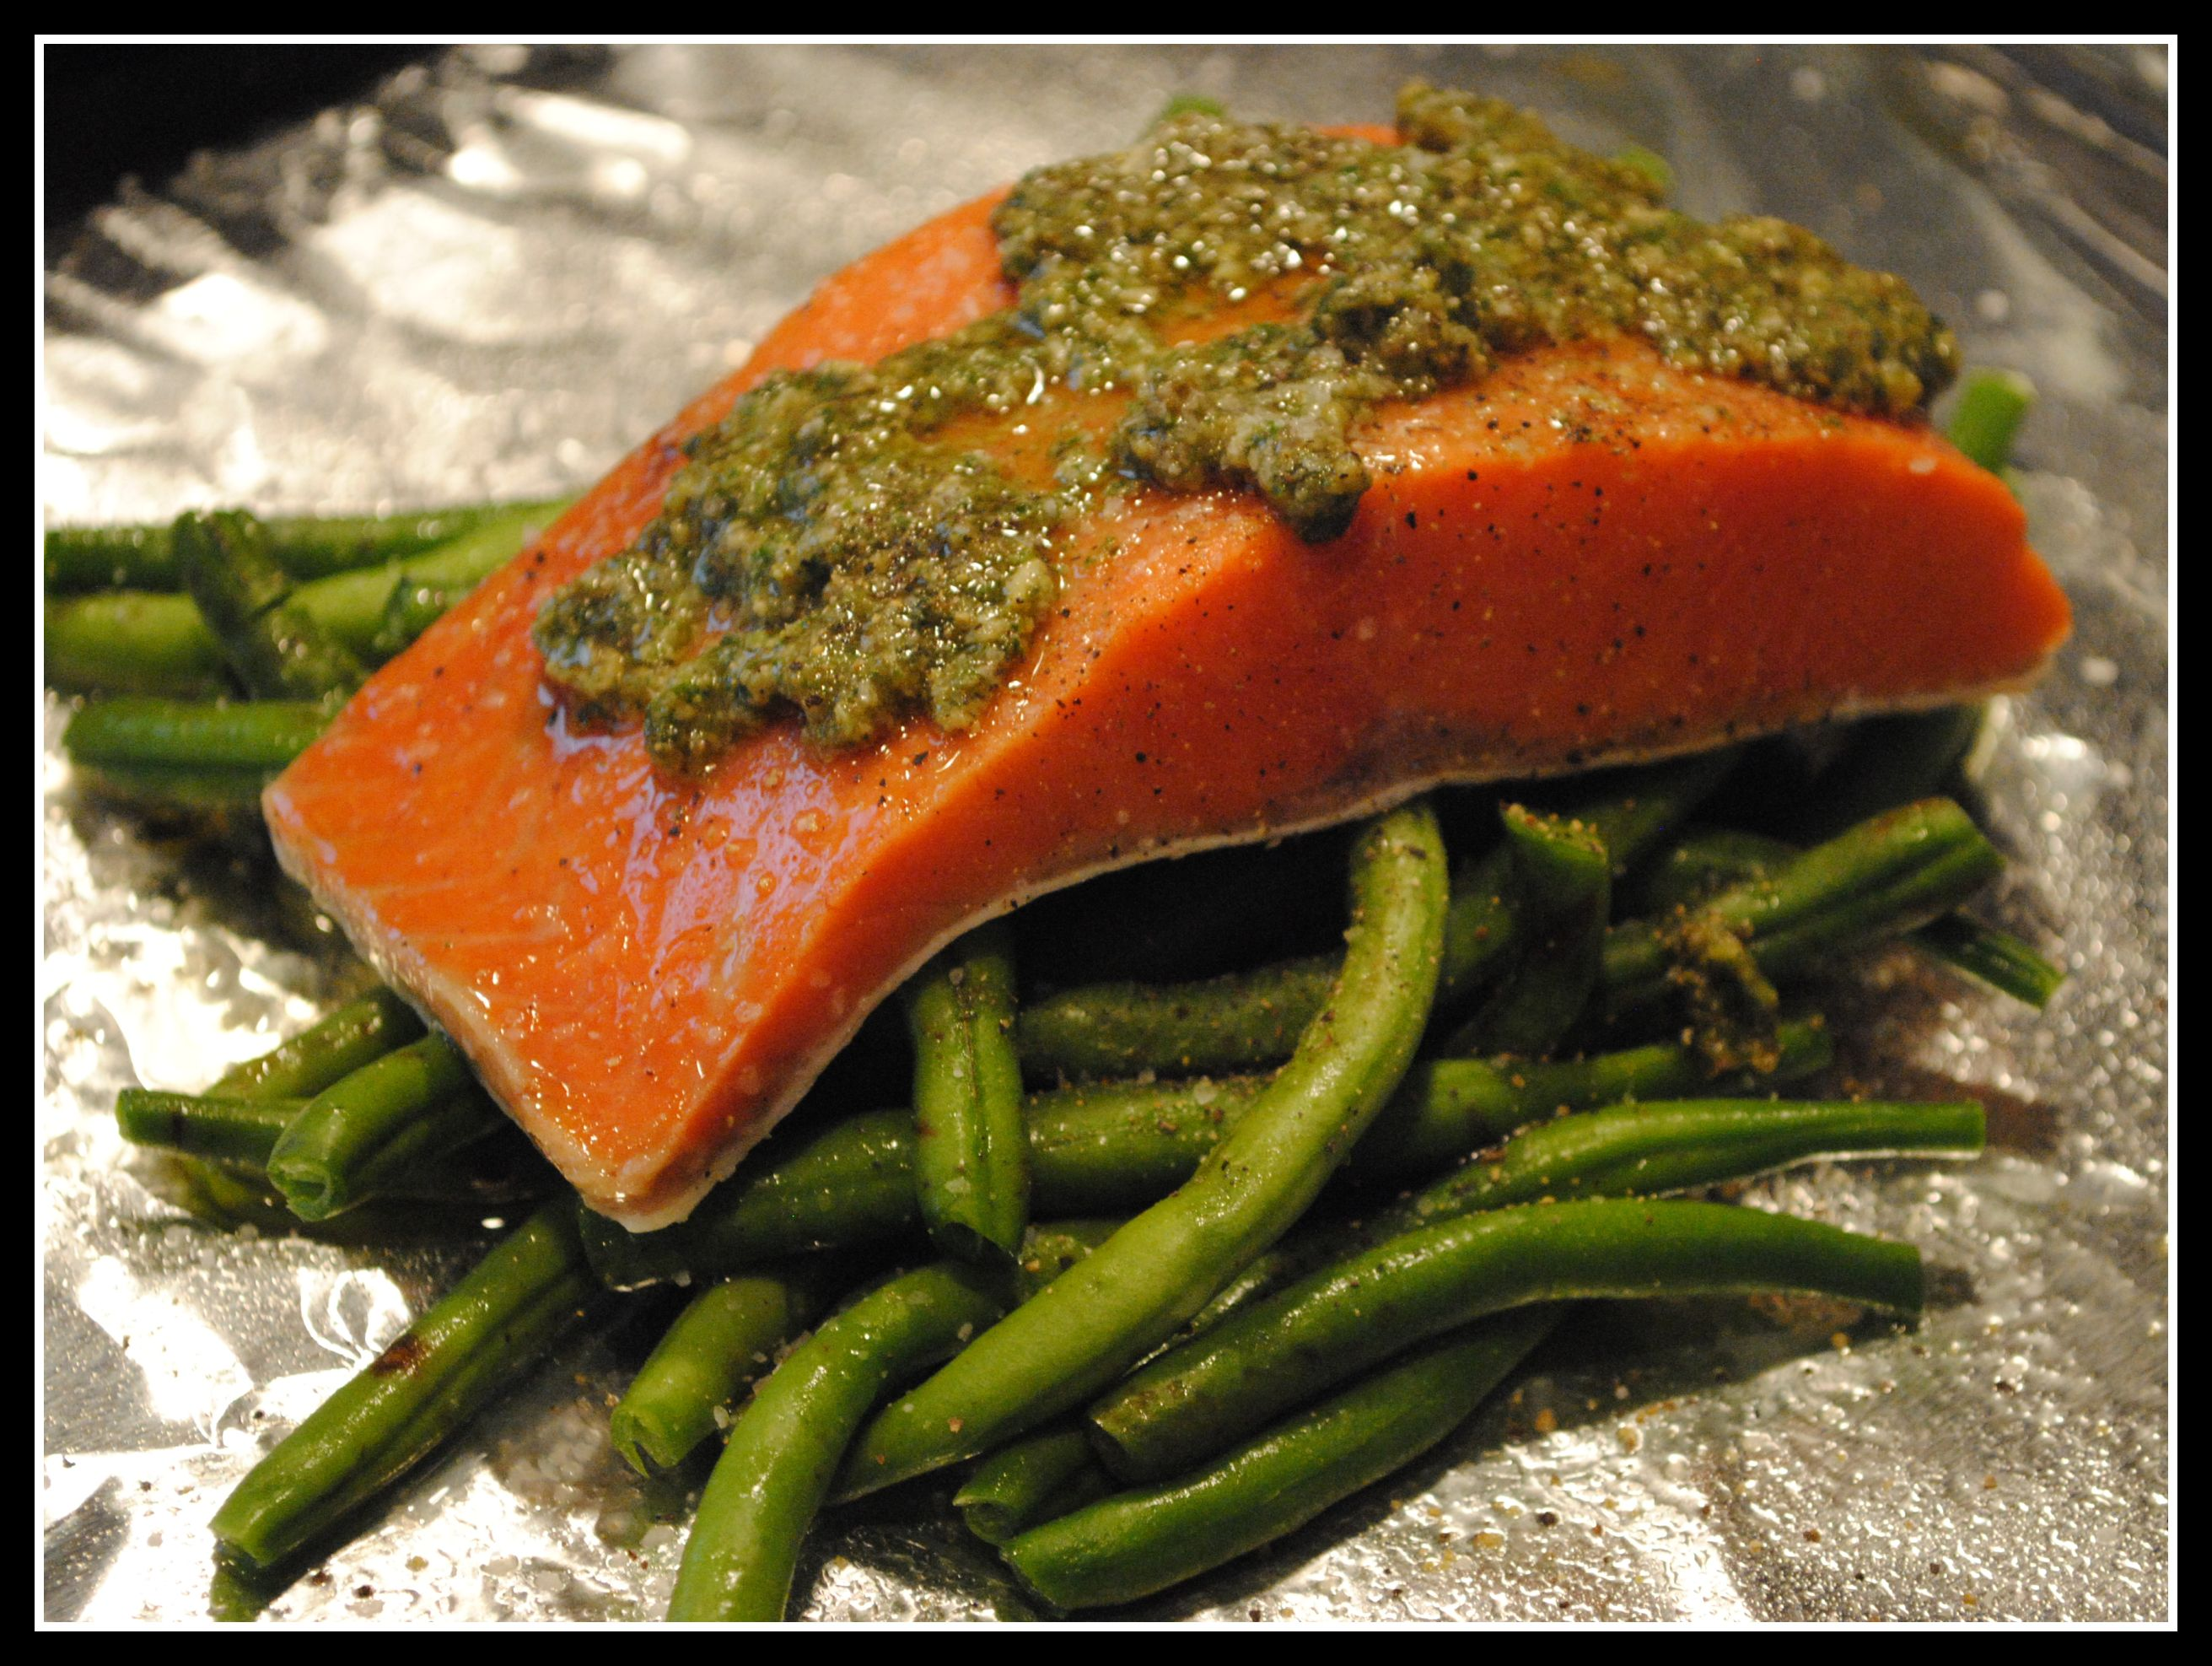 Salmon Baked In A Foil Parcel With Green Beans And Pesto